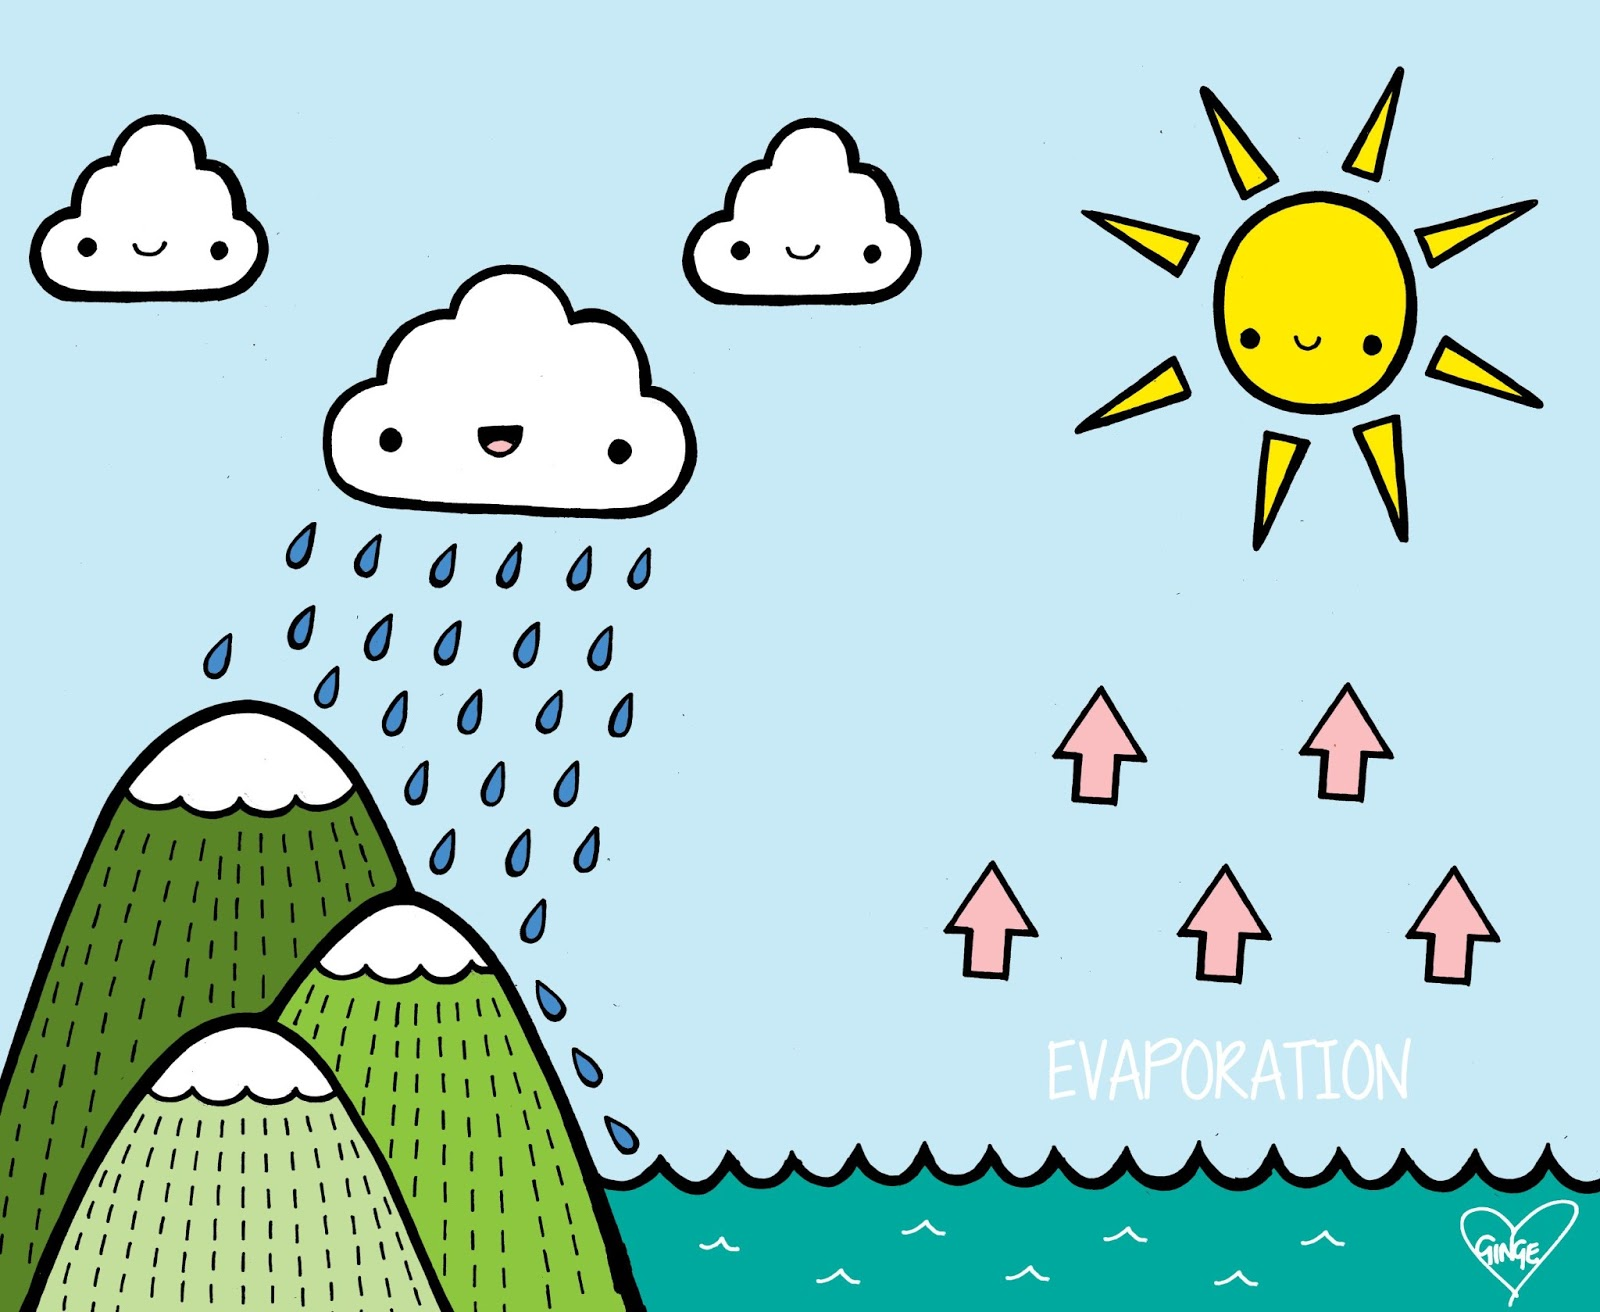 Drawing at getdrawings com. Evaporation clipart